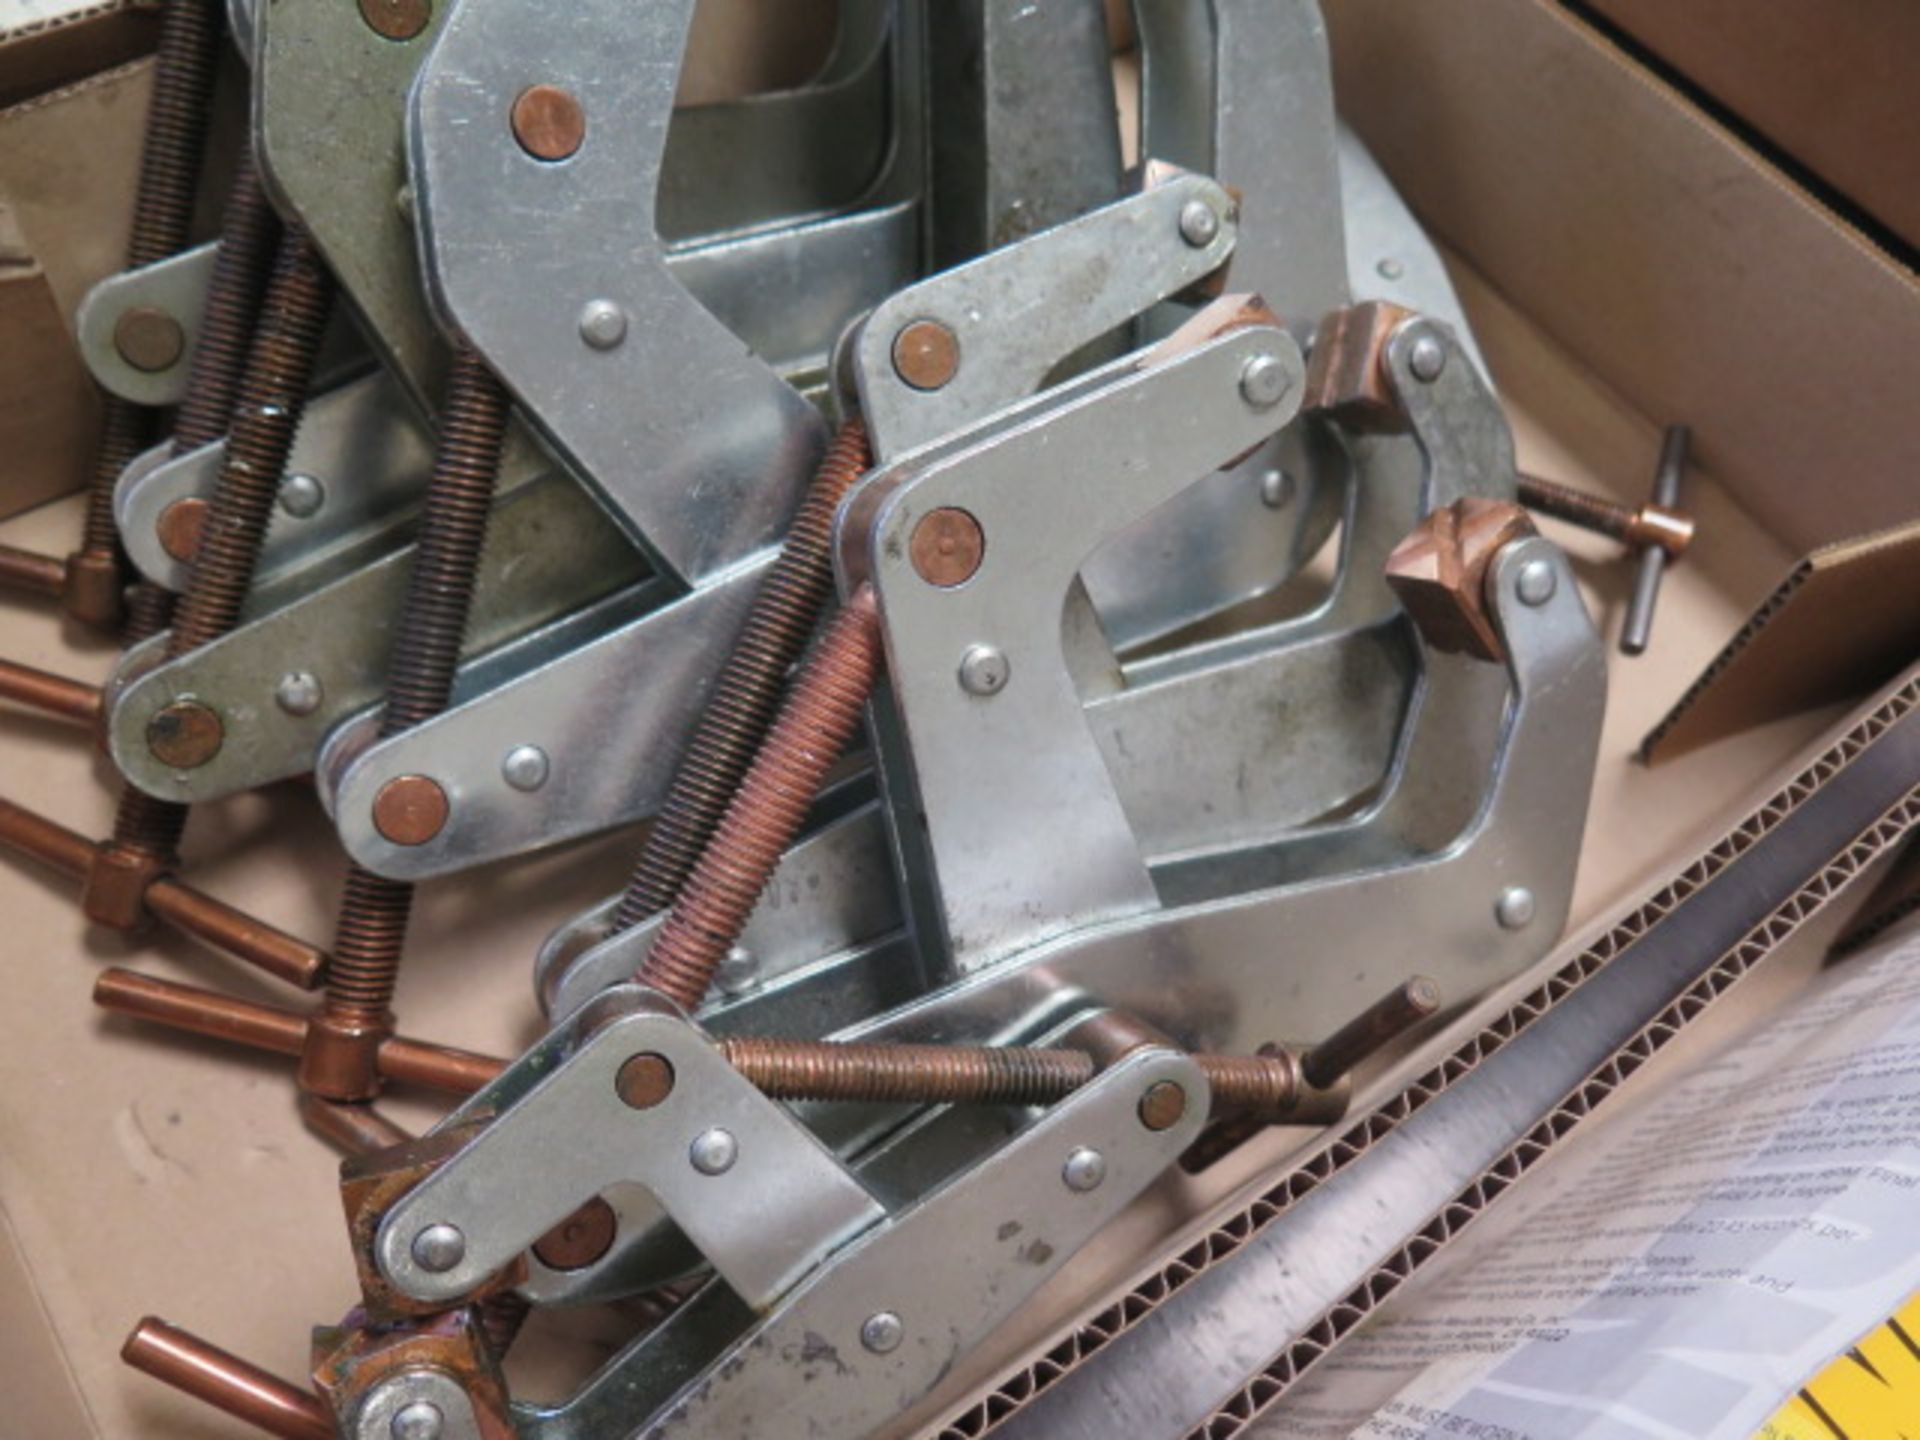 Kant-Twist Clamps (SOLD AS-IS - NO WARRANTY) - Image 3 of 4